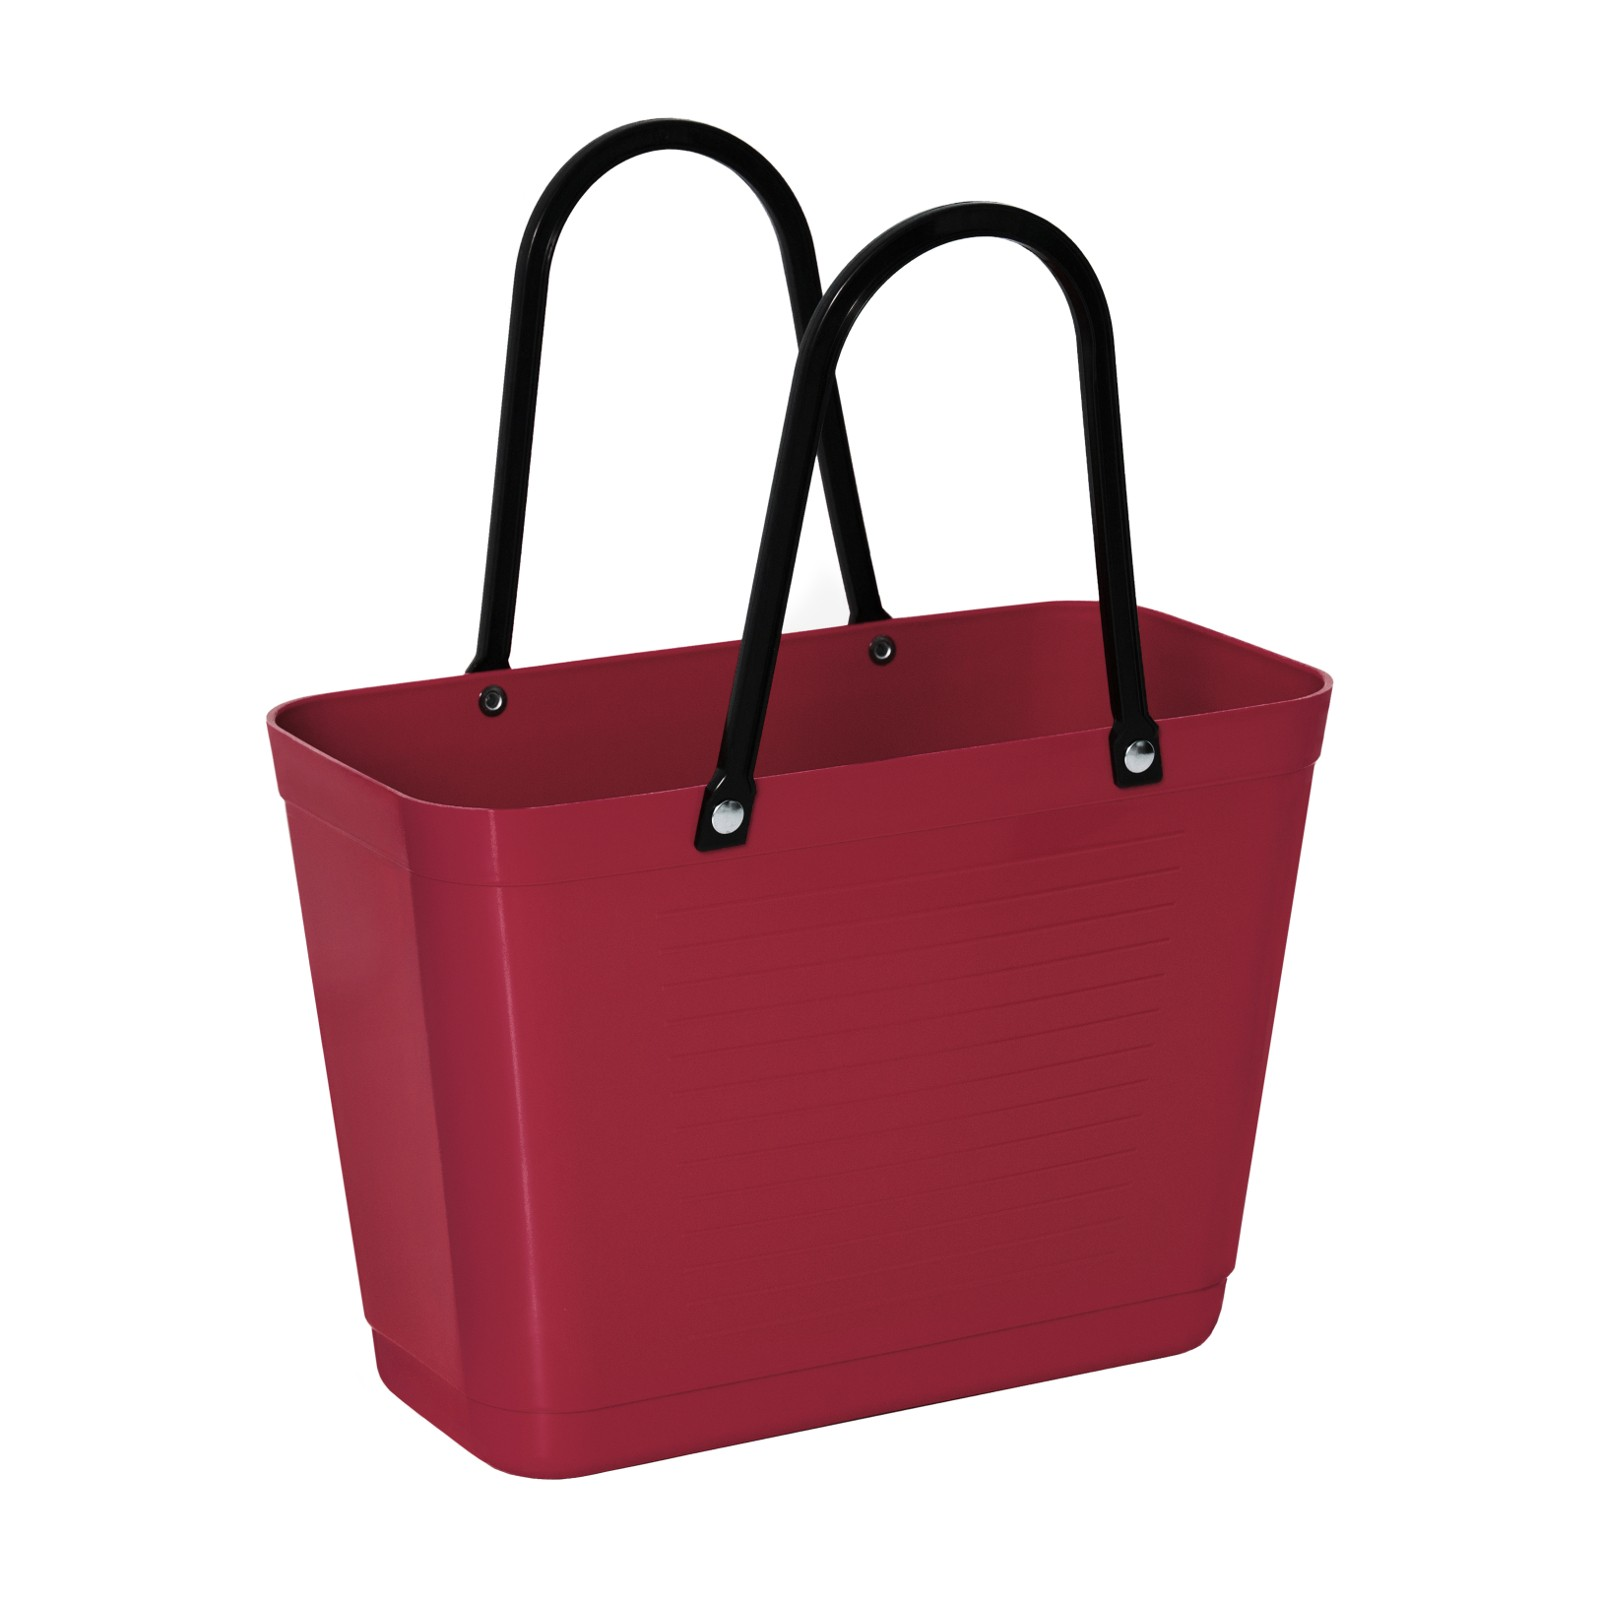 hinza 257-hinza-bag-small-maroon-green-plastic